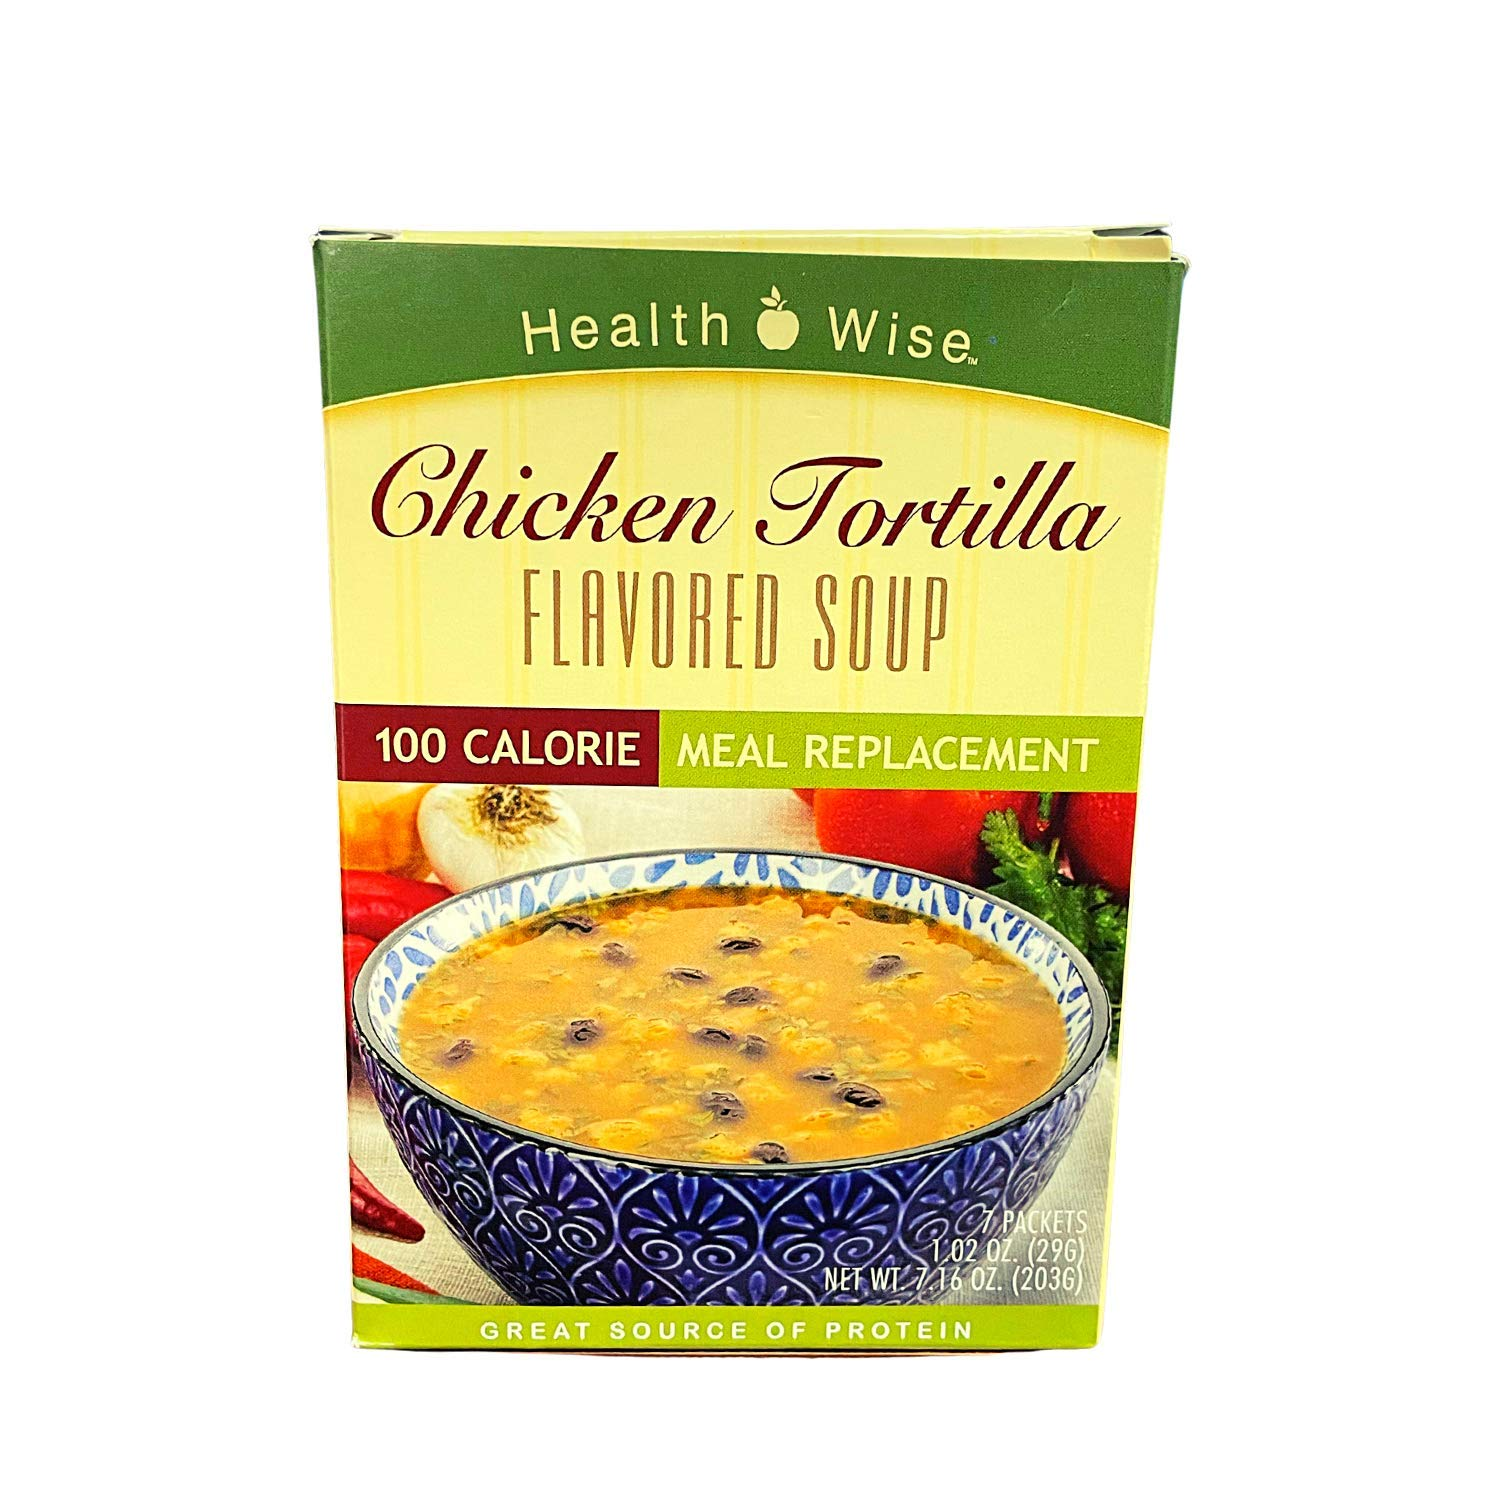 Healthwise - Chicken Tortilla Soup   7/Box   Healthy Nutritious Diet Soup   High Protein - Meal Rep[lacement - Low Fat - Low Sugar - 100 Calorie